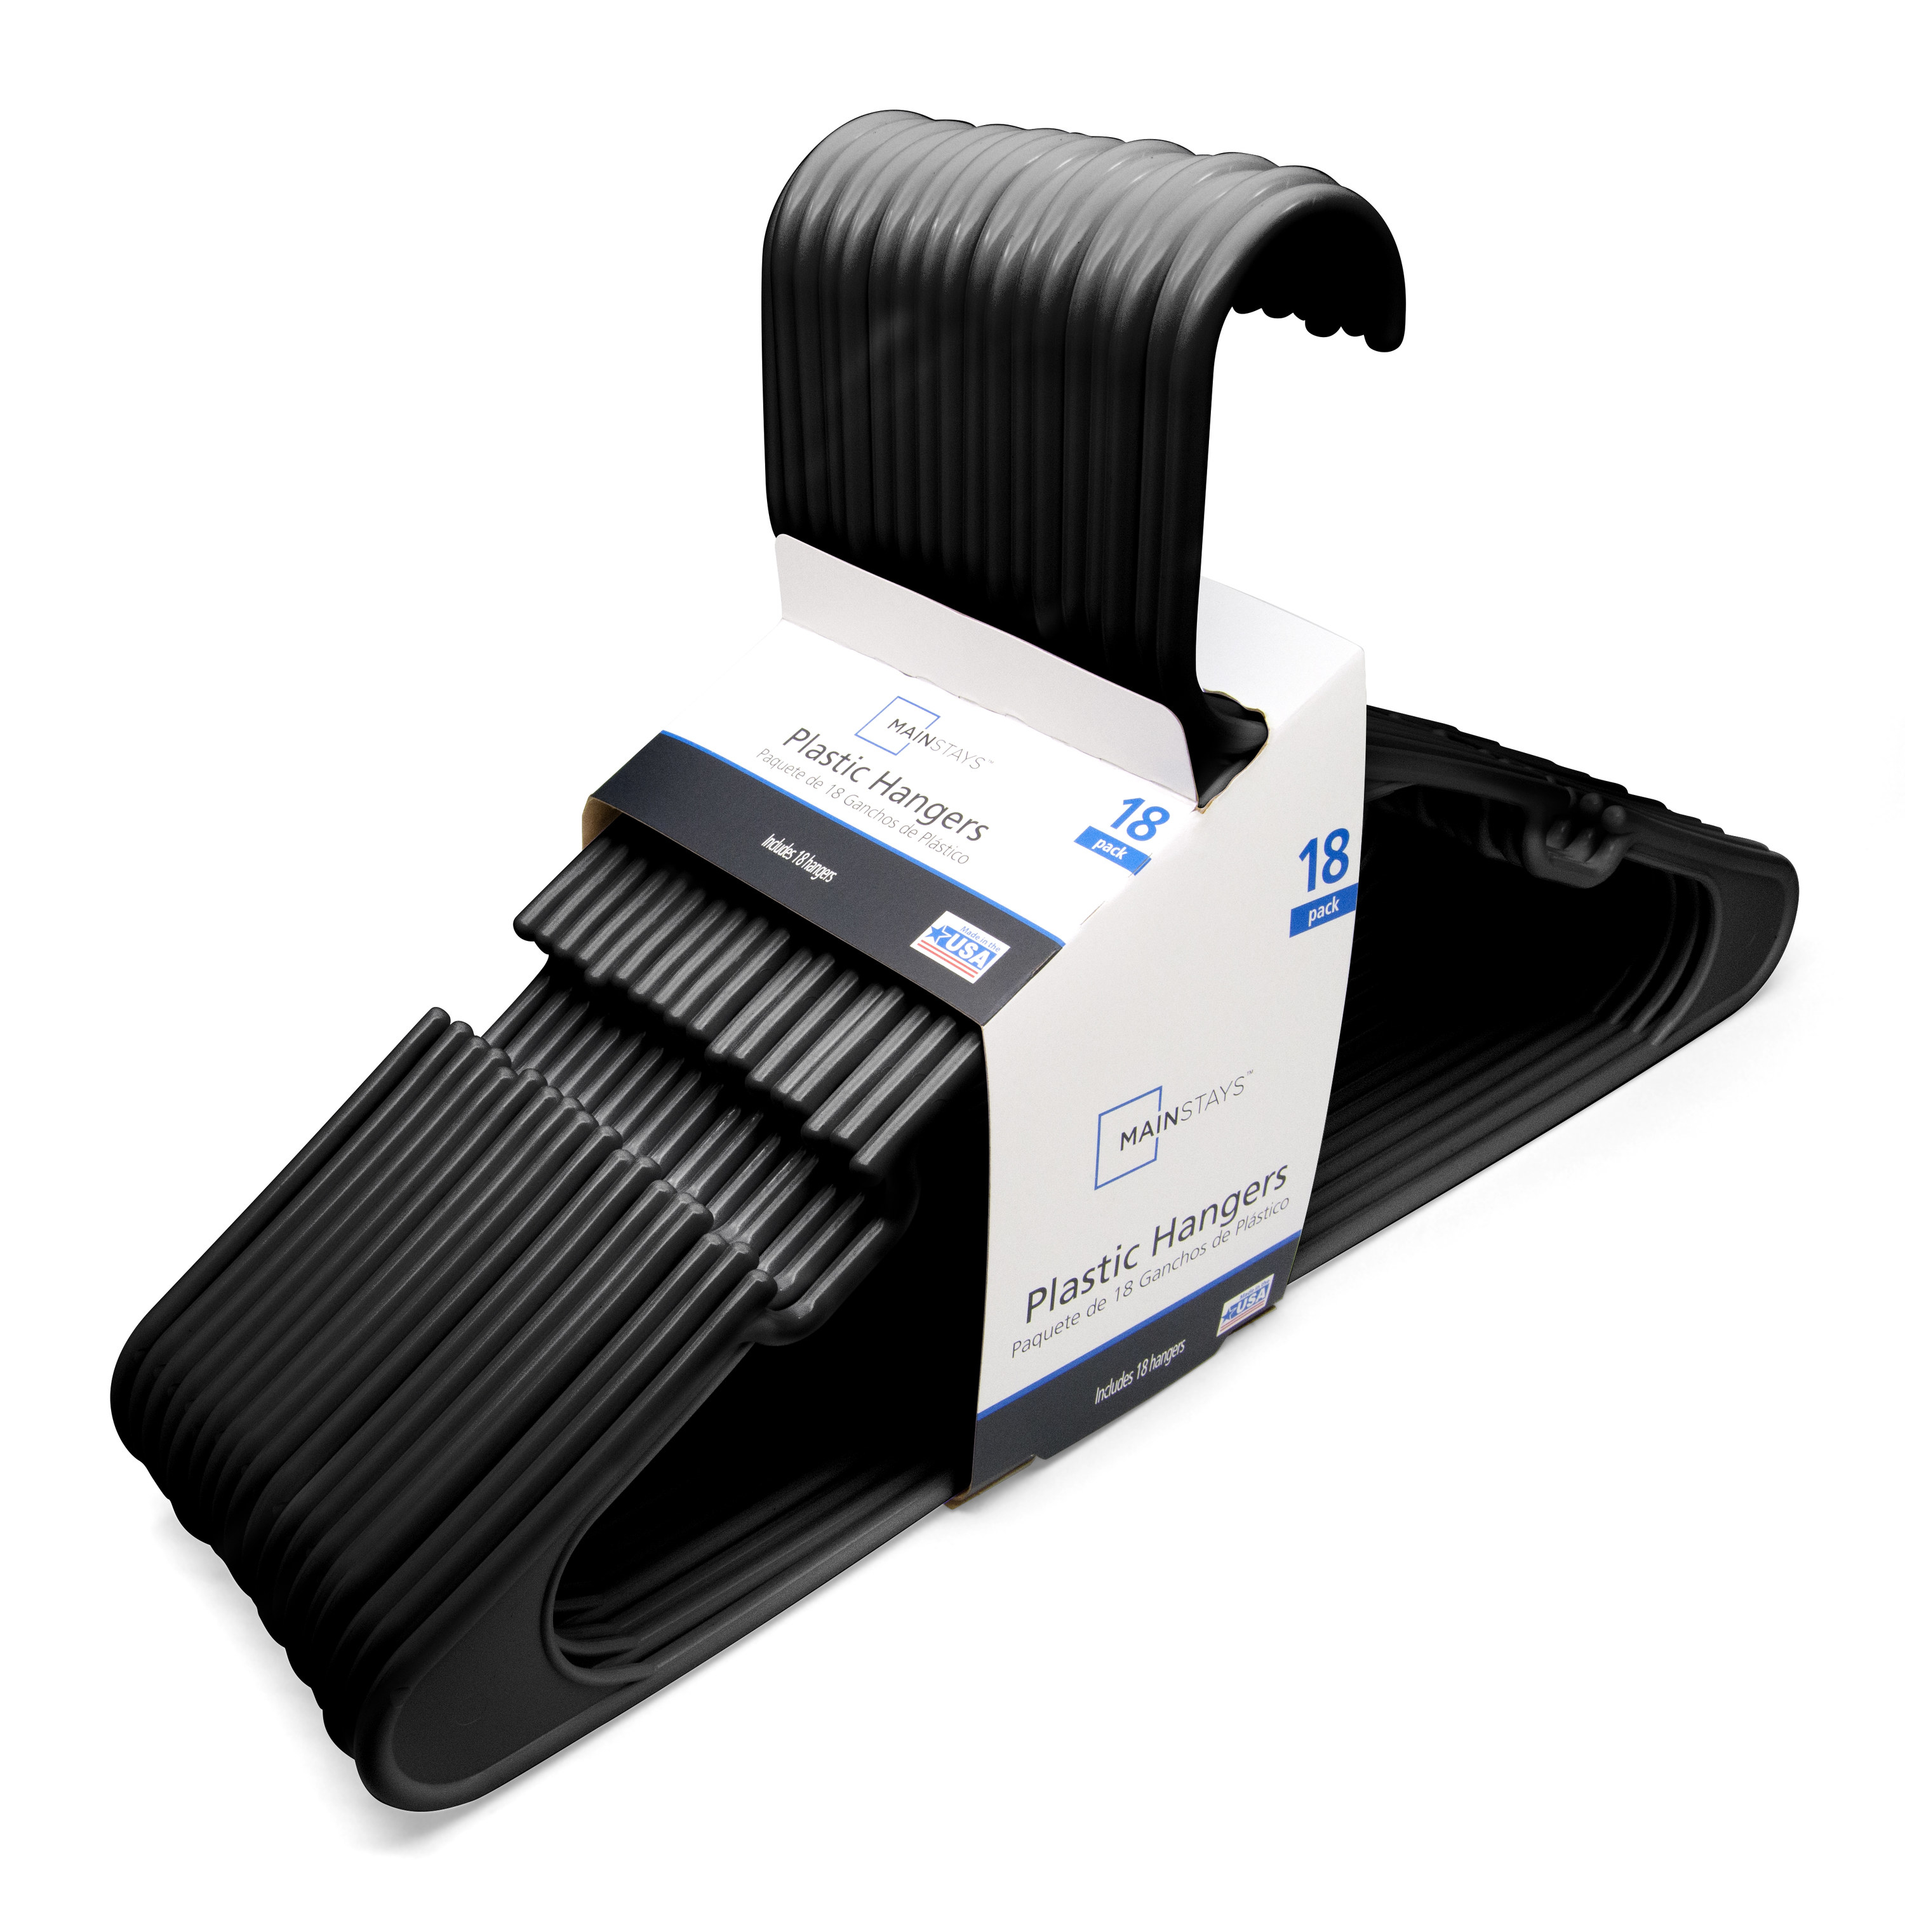 The 18-pack of black plastic clothing hangers